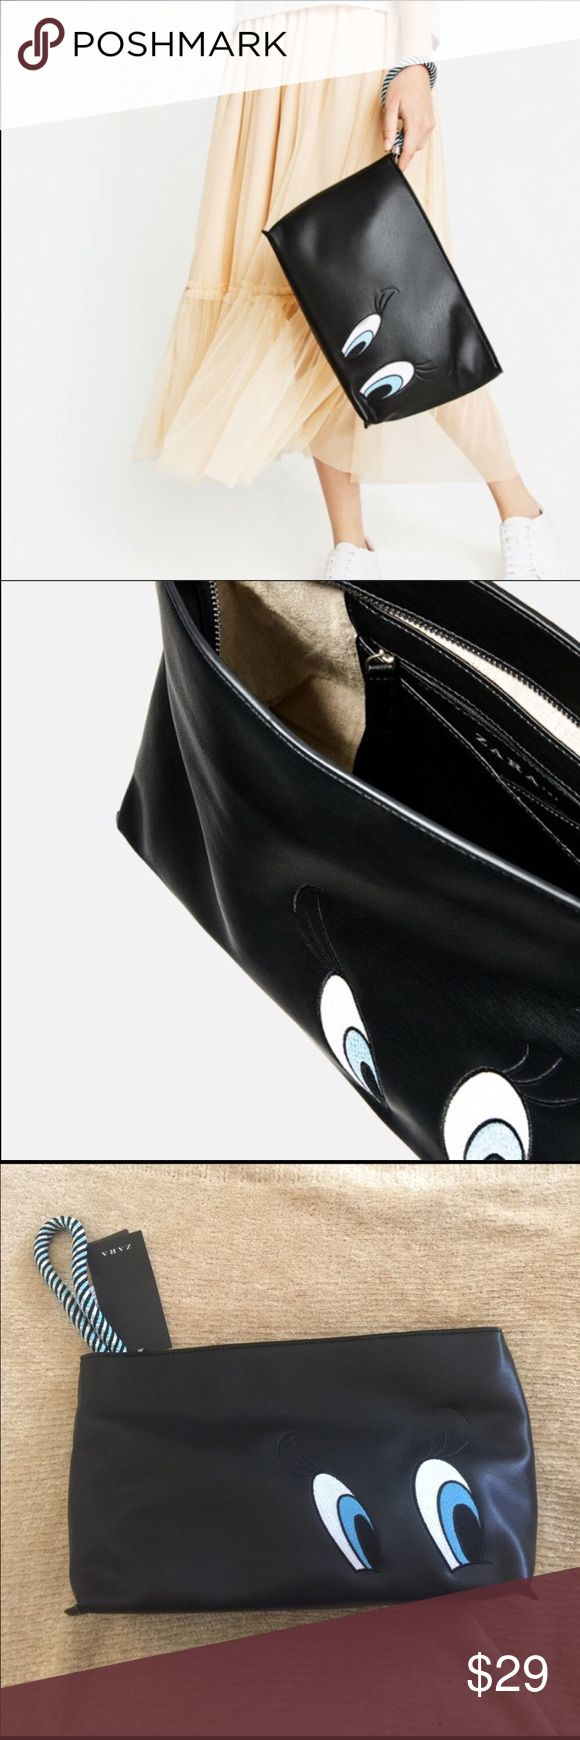 NWT ZARA BLACK TWEETY CLUTCH Brand new with tags! New, never worn. Sold out online! Zara Bags Clutches & Wristlets